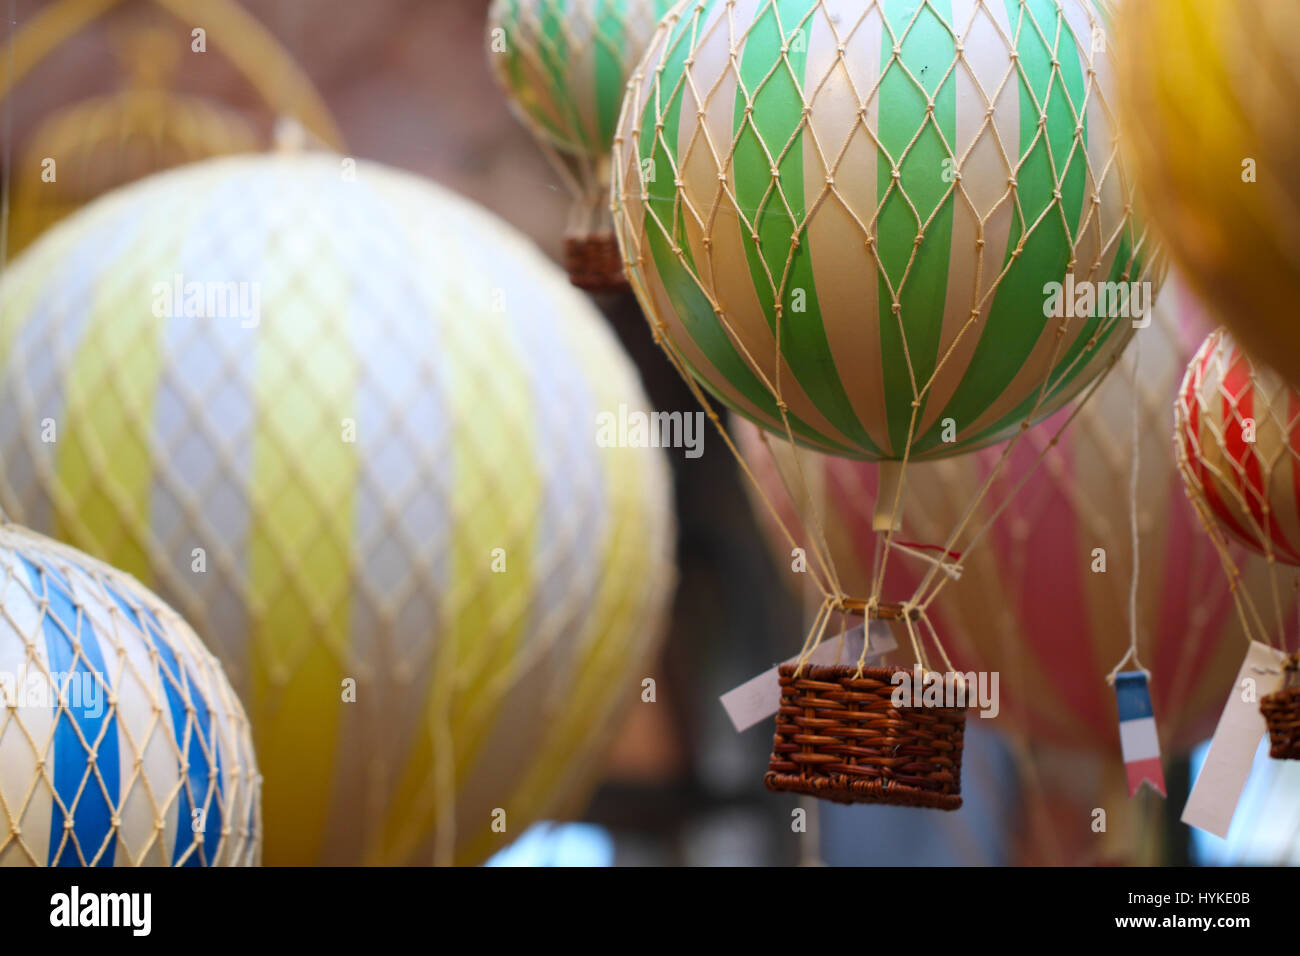 model hot air balloon stockfotos model hot air balloon bilder alamy. Black Bedroom Furniture Sets. Home Design Ideas